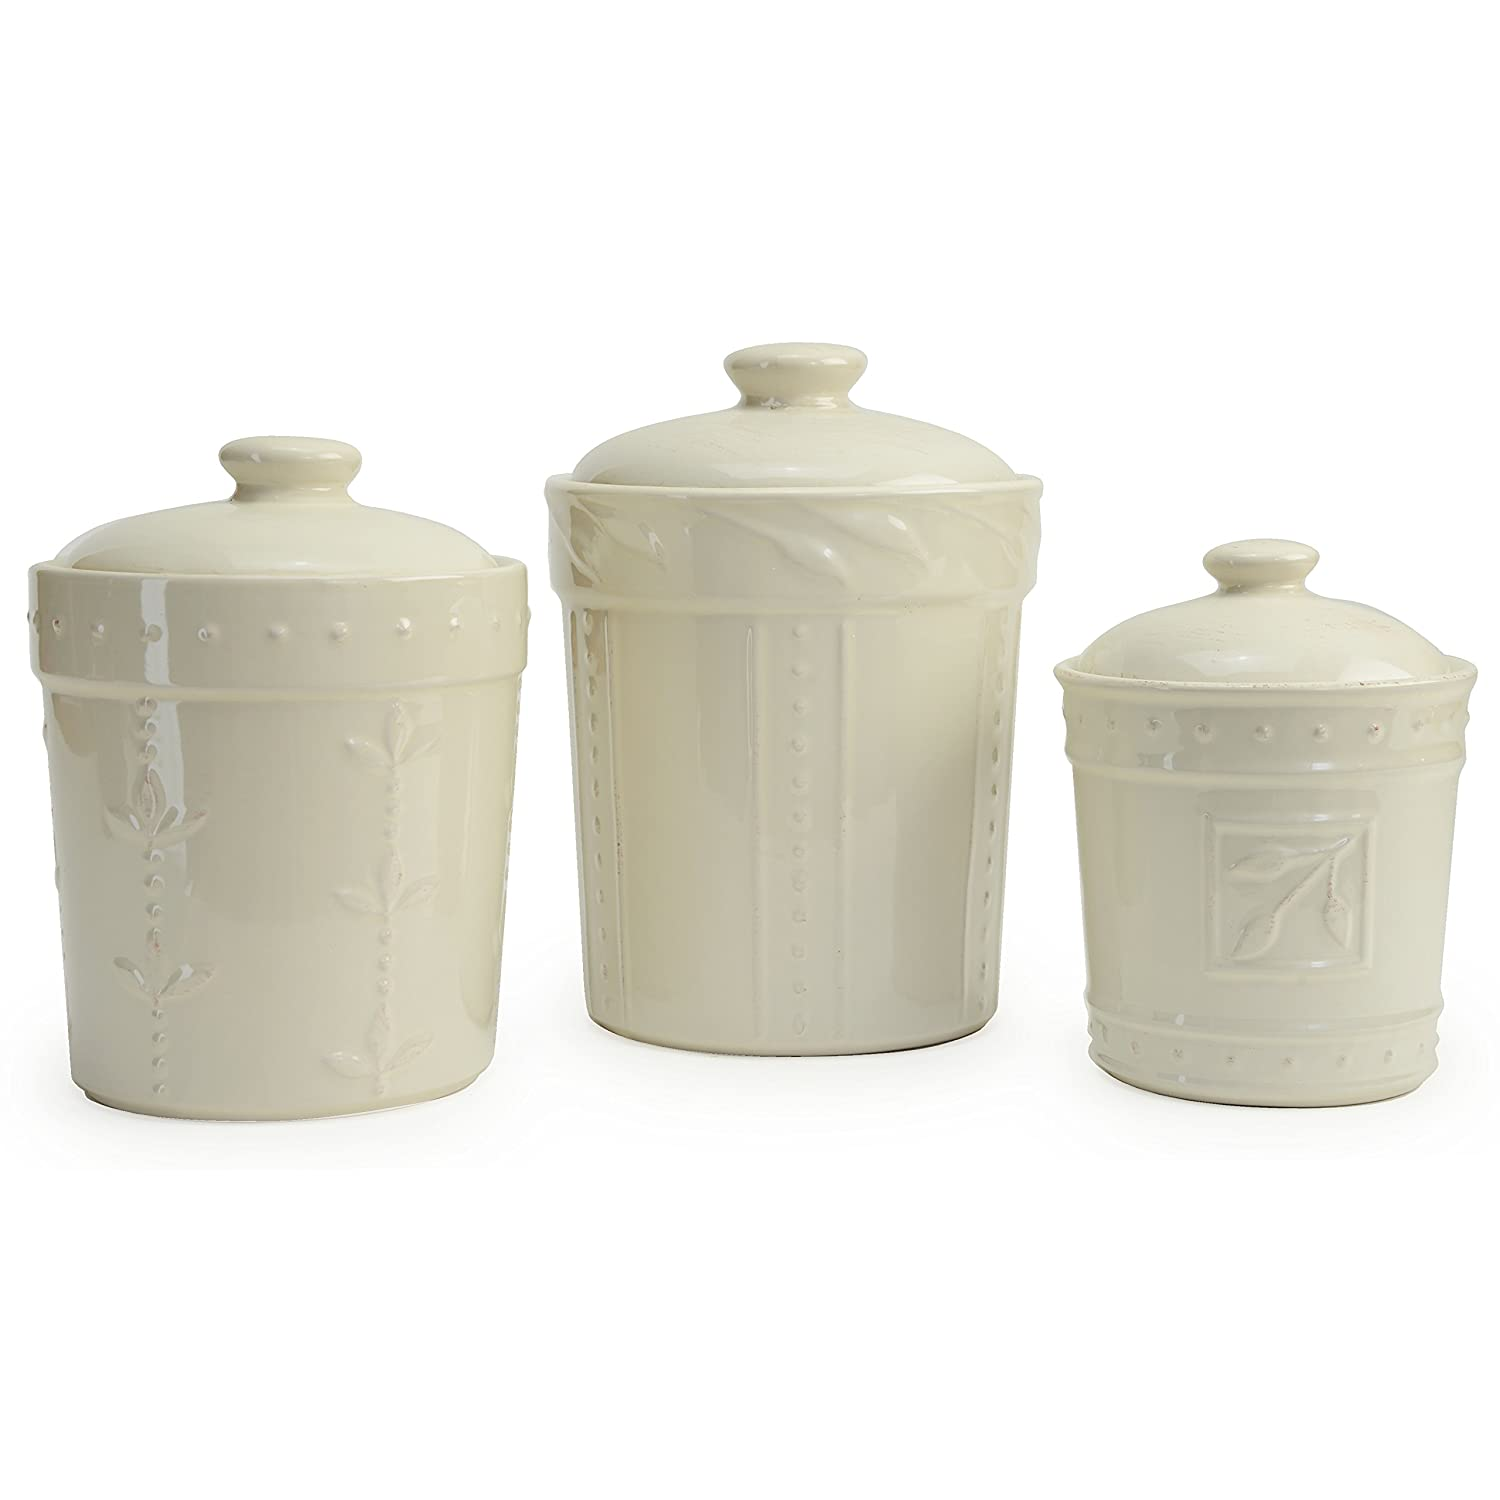 Signature Housewares Sorrento Collection Set of Three Canisters, 80 Ounce, 48 Ounce, 36 Ounce, Ivory 70726